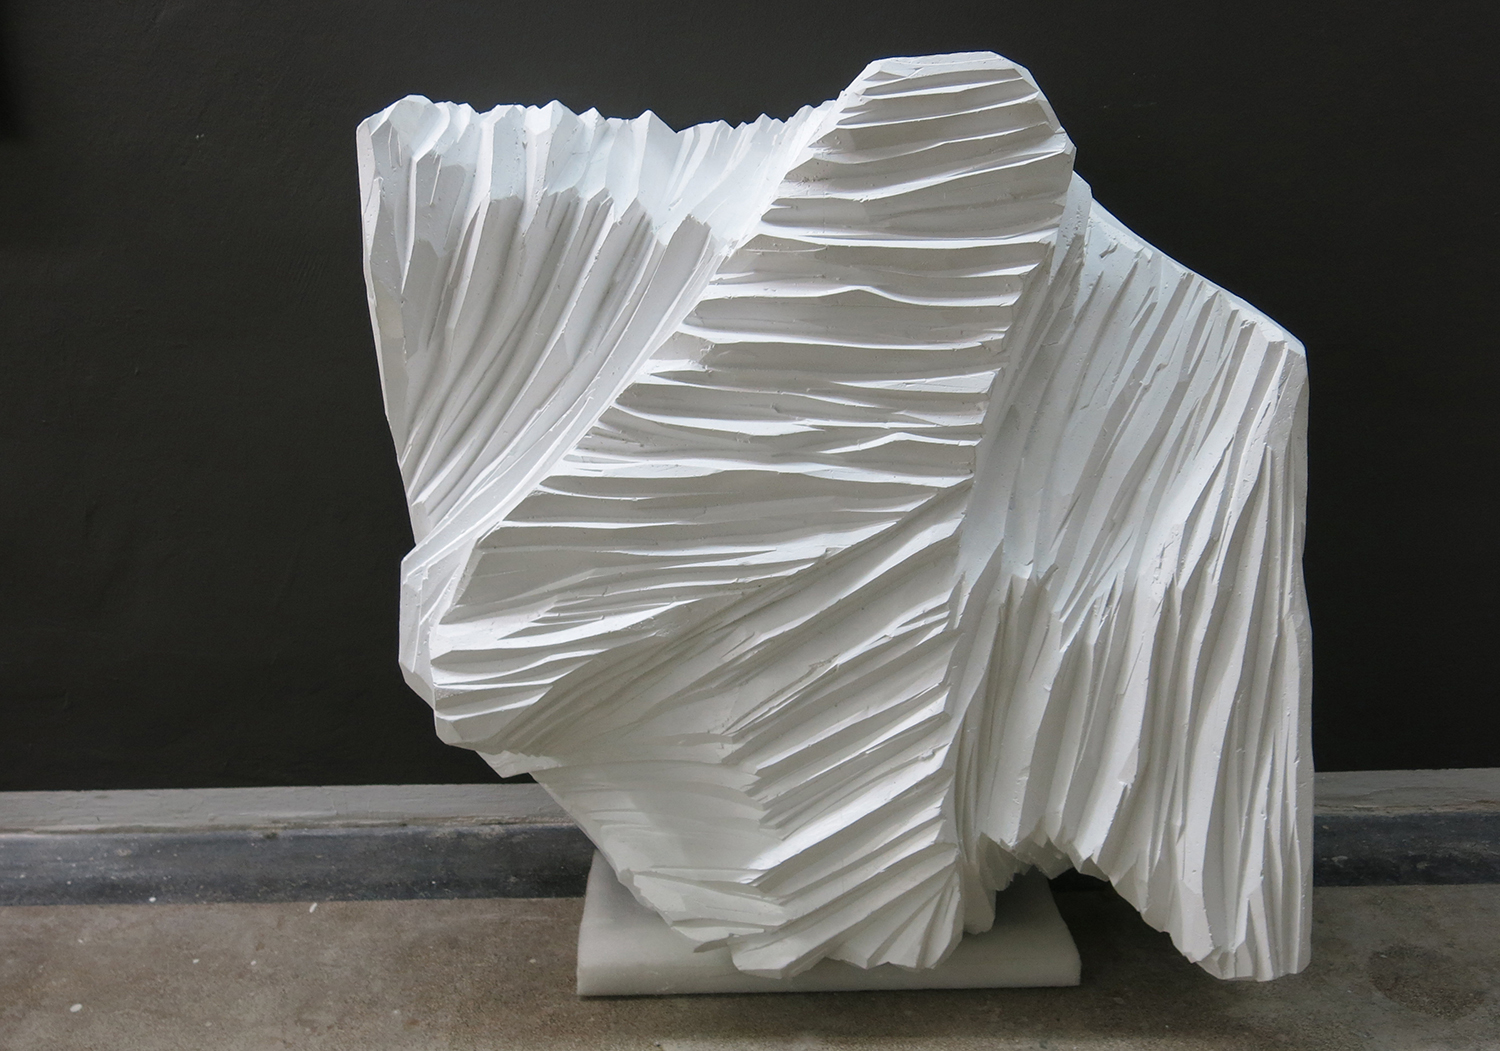 August 2019 - Untitled - White Sculpture